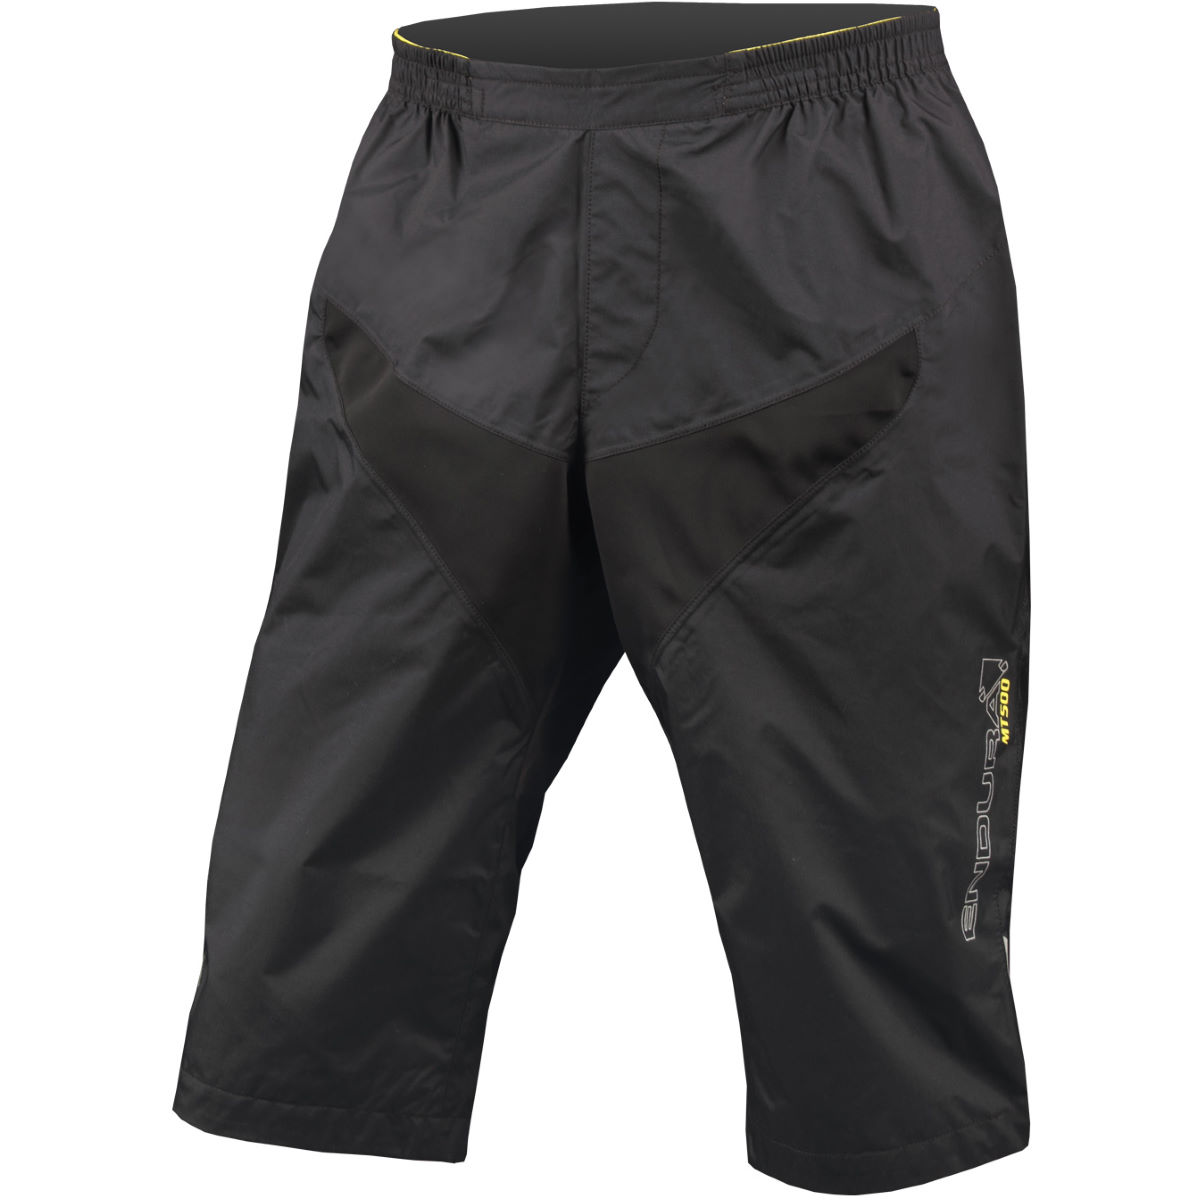 Short Endura MT500 II (imperméable) - S Noir Shorts VTT